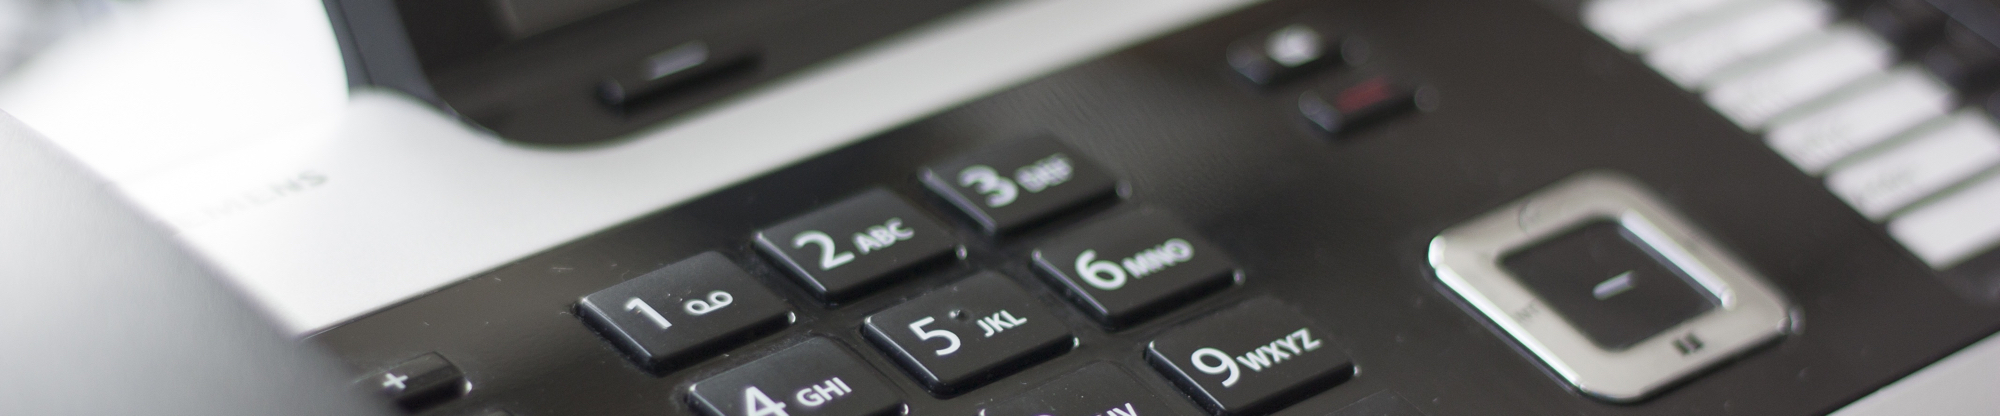 A cropped photo of a telephone, centred on its number pad